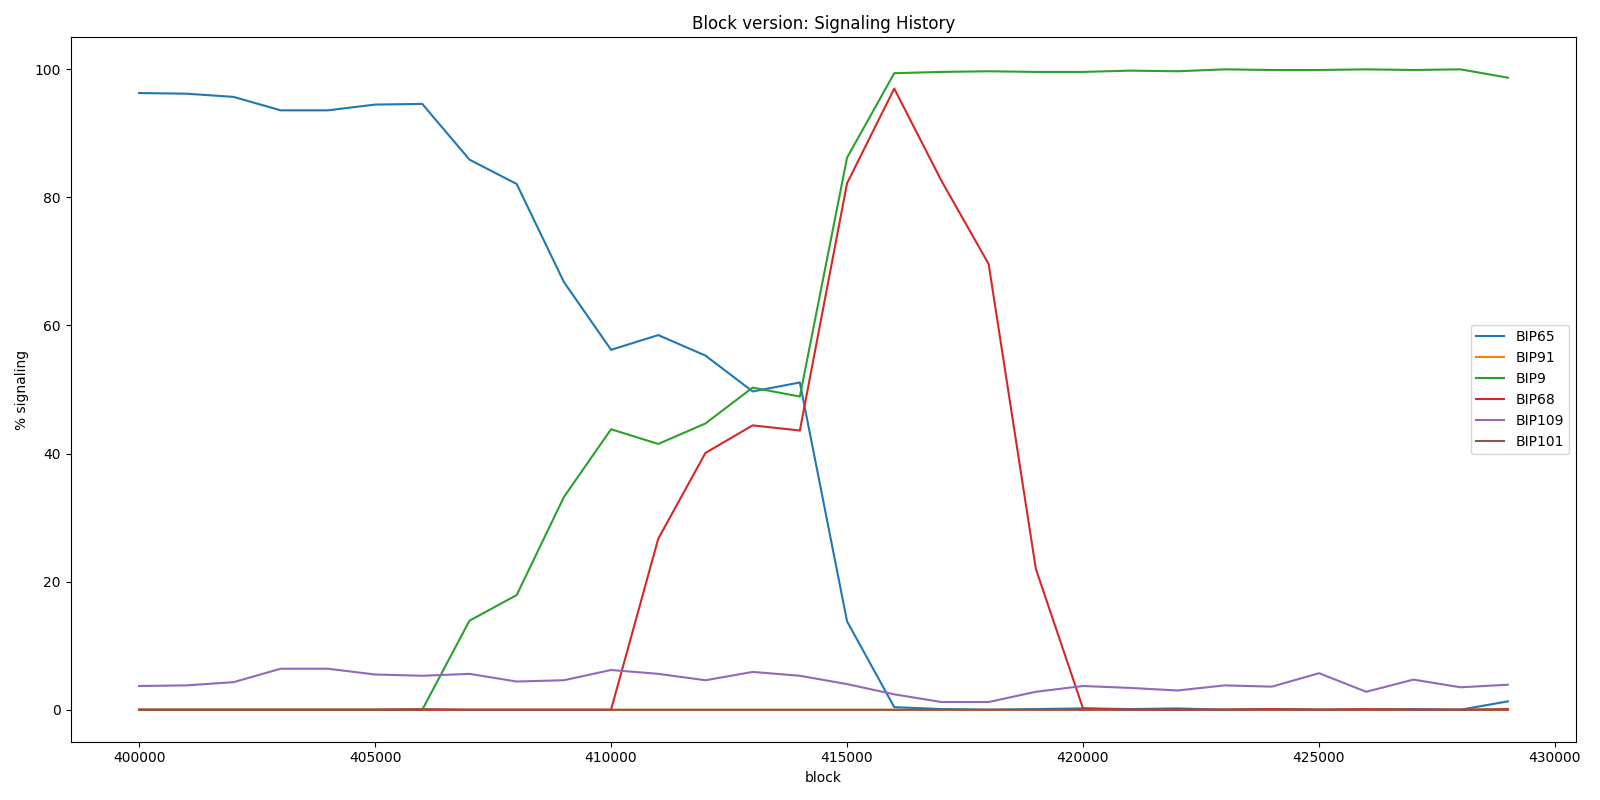 BIP9 and BIP68 - Block version history